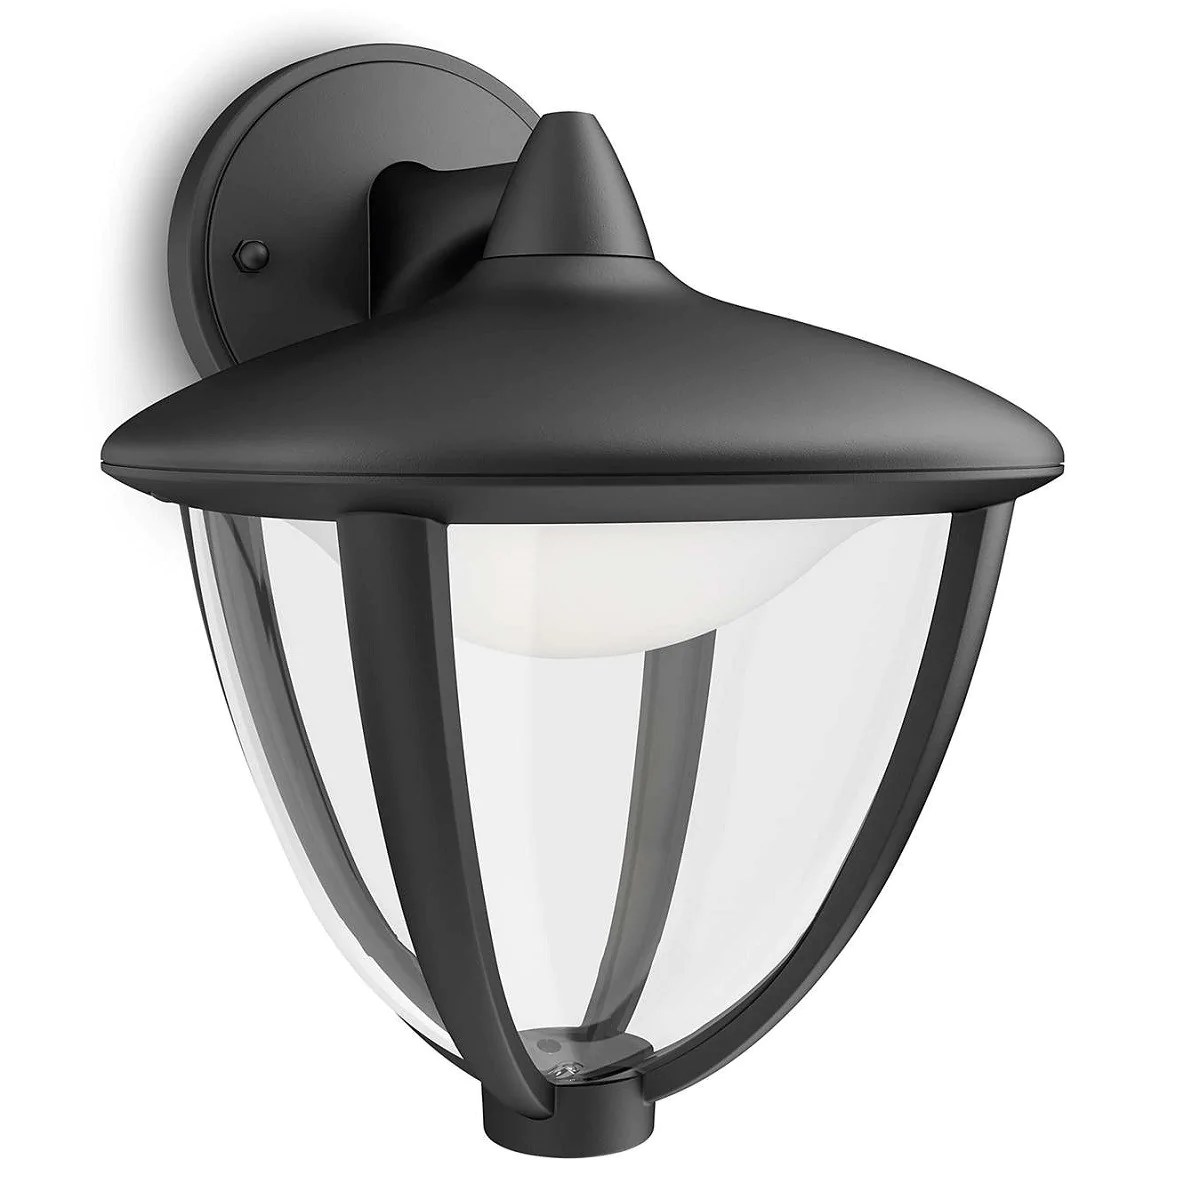 Philips Mygarden Outdoor Wall Light Philips 15471 30 16 Robin Black Led Outdoor Down Lantern Wall Light 154713016